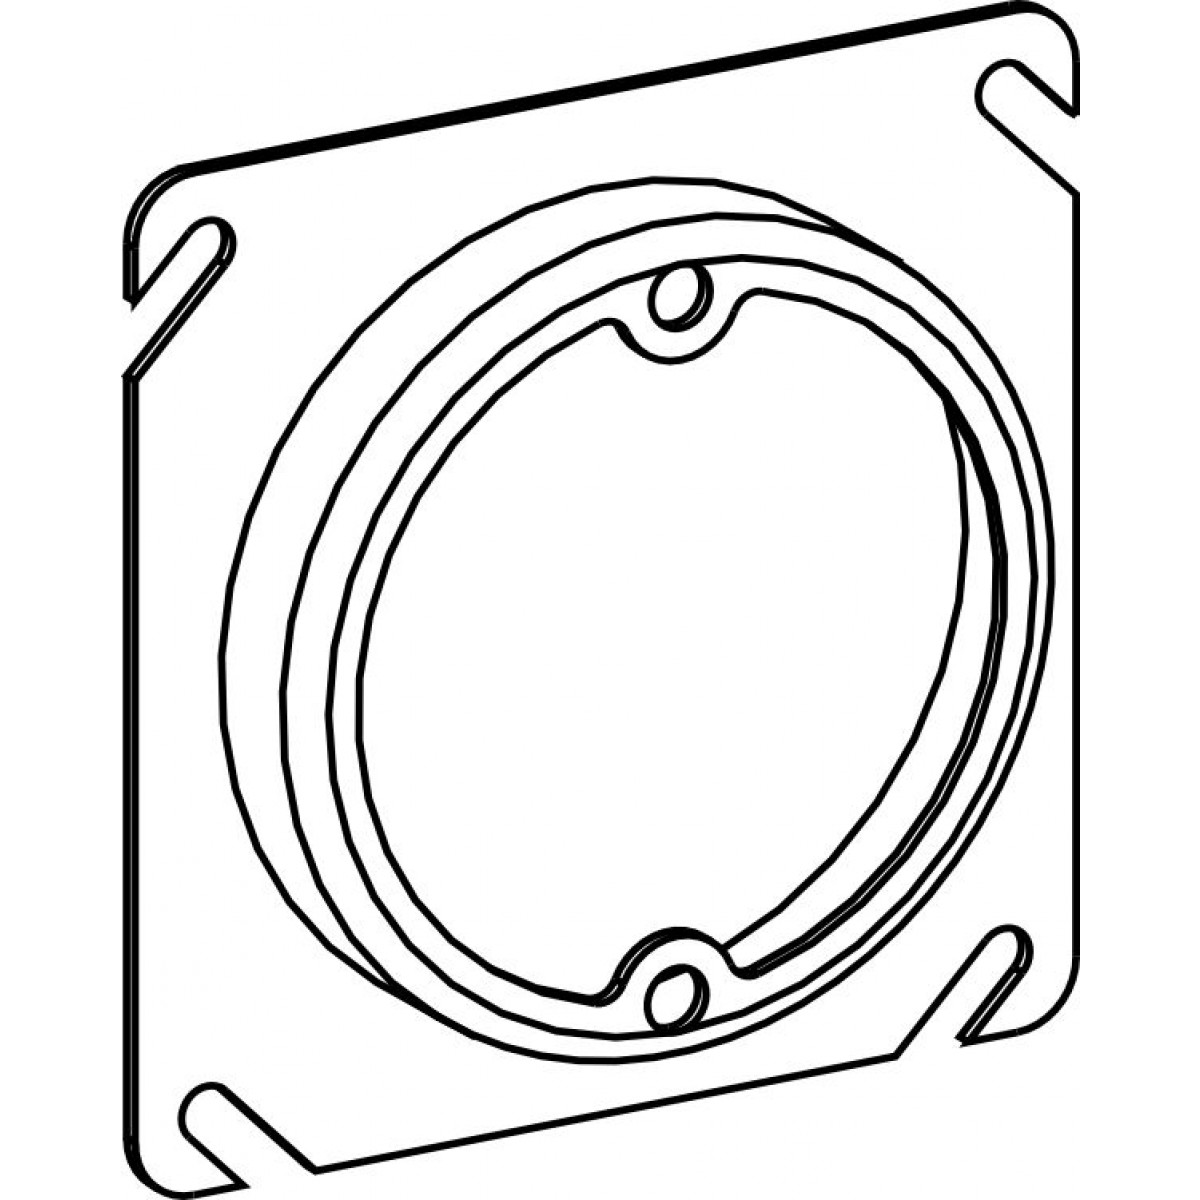 43058 - 4s covers - 4s rings and covers